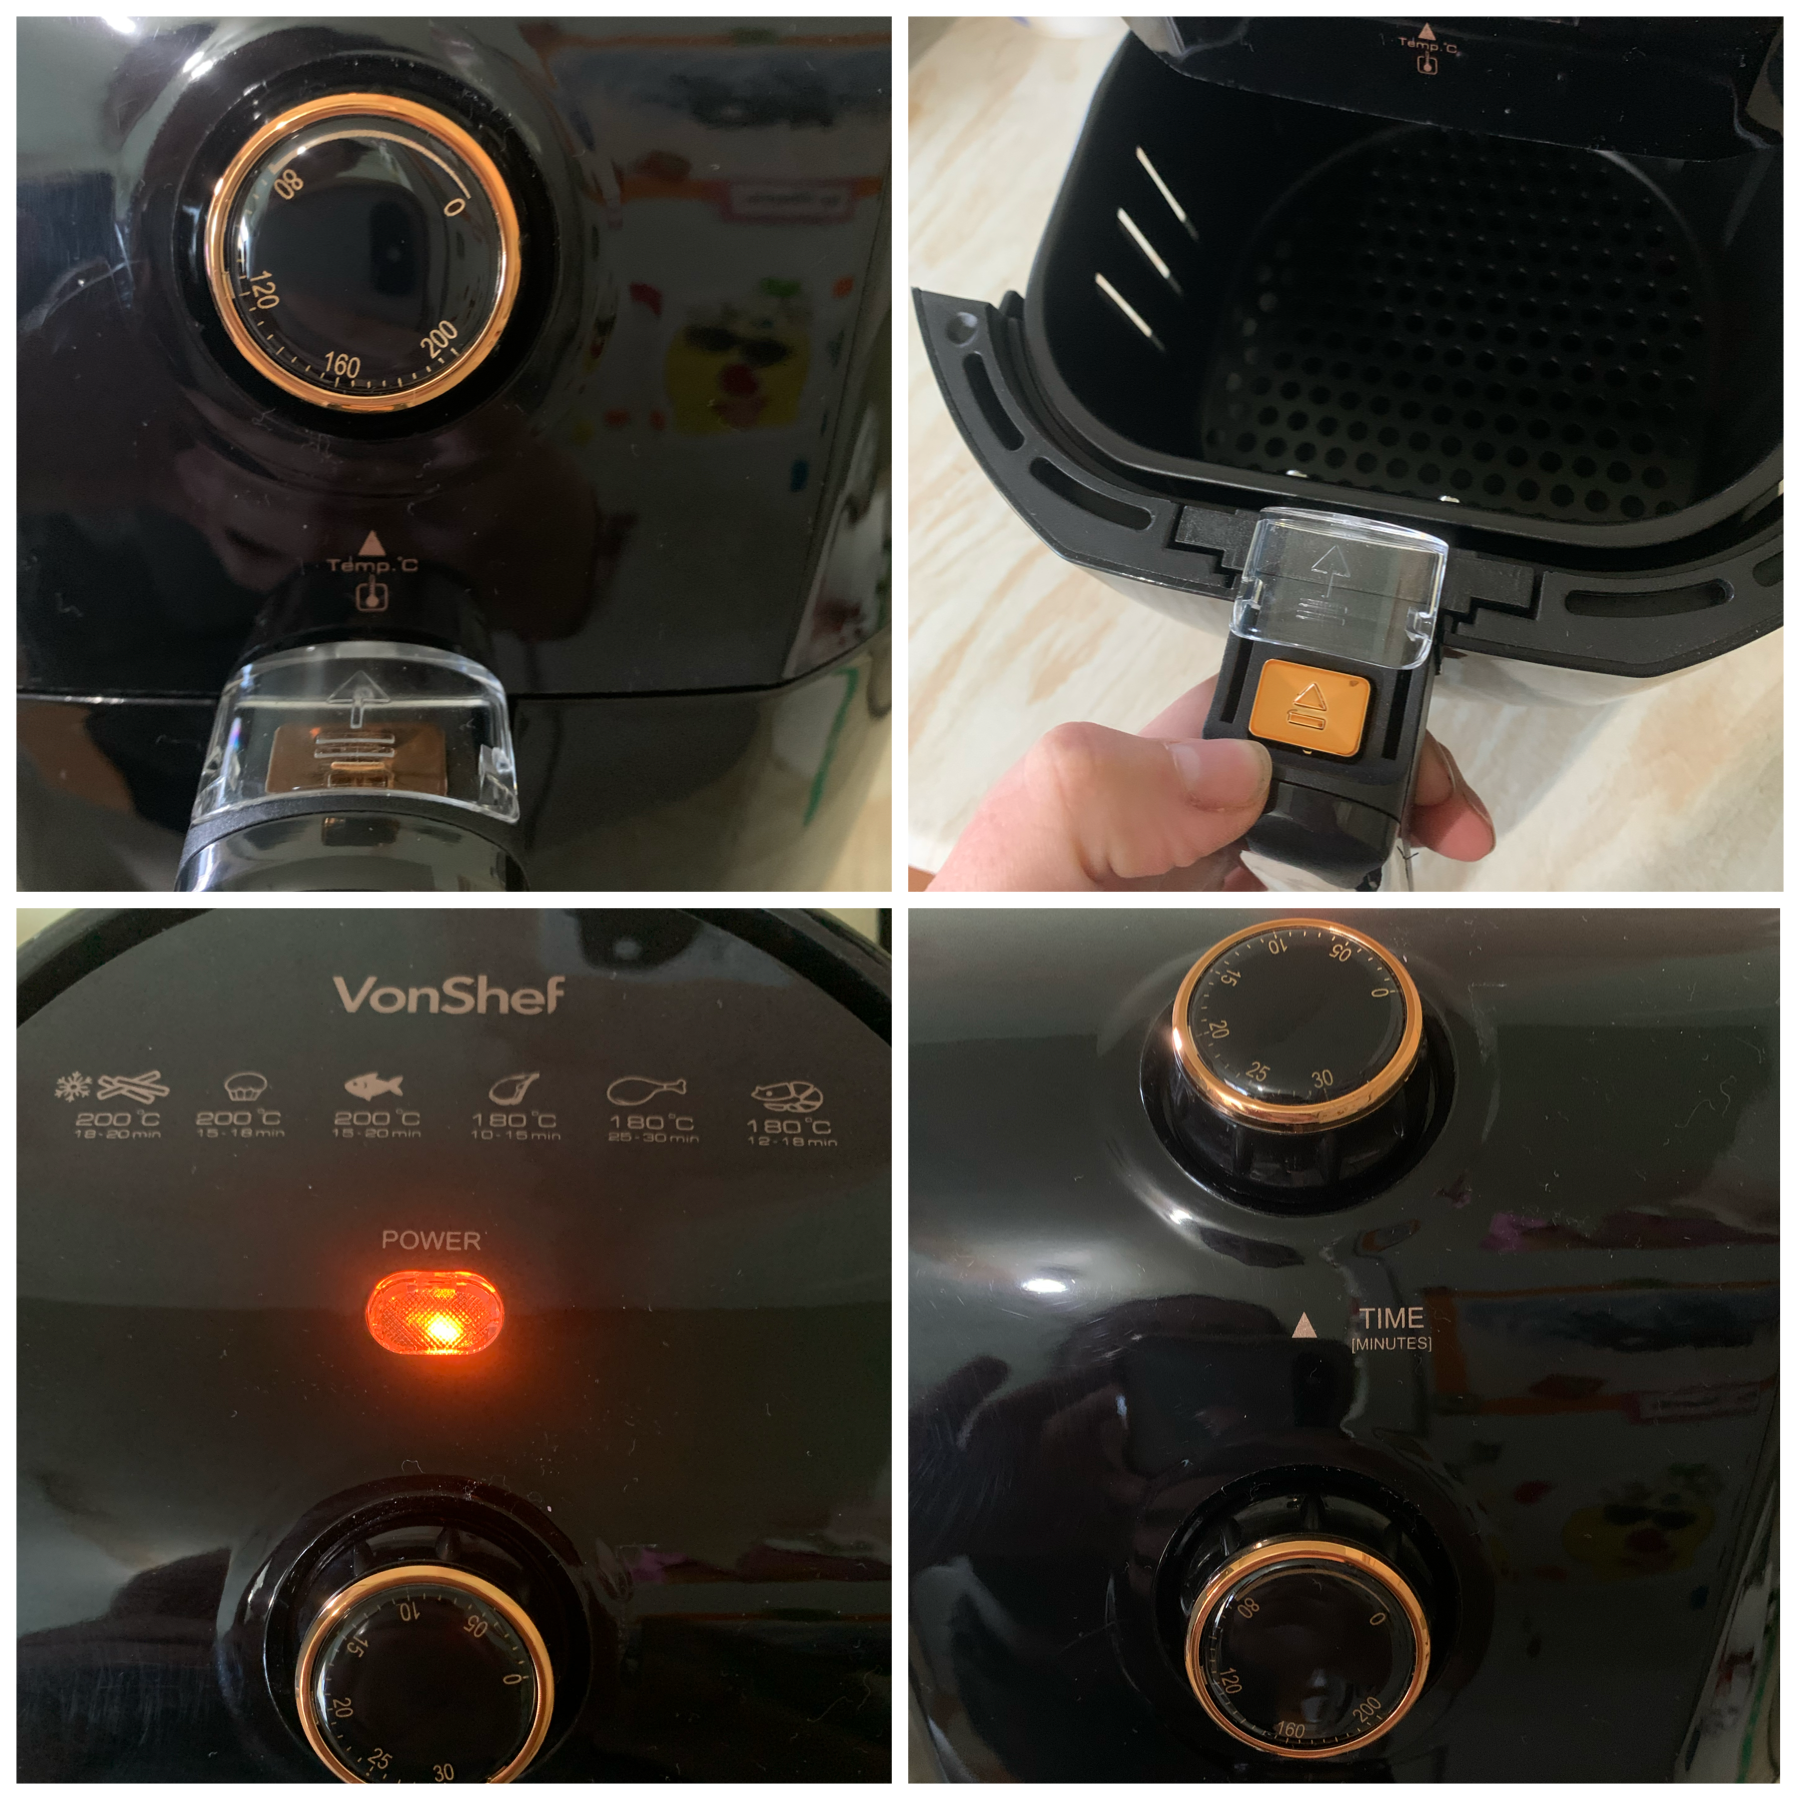 vonhaus air fryer review photos of it up close